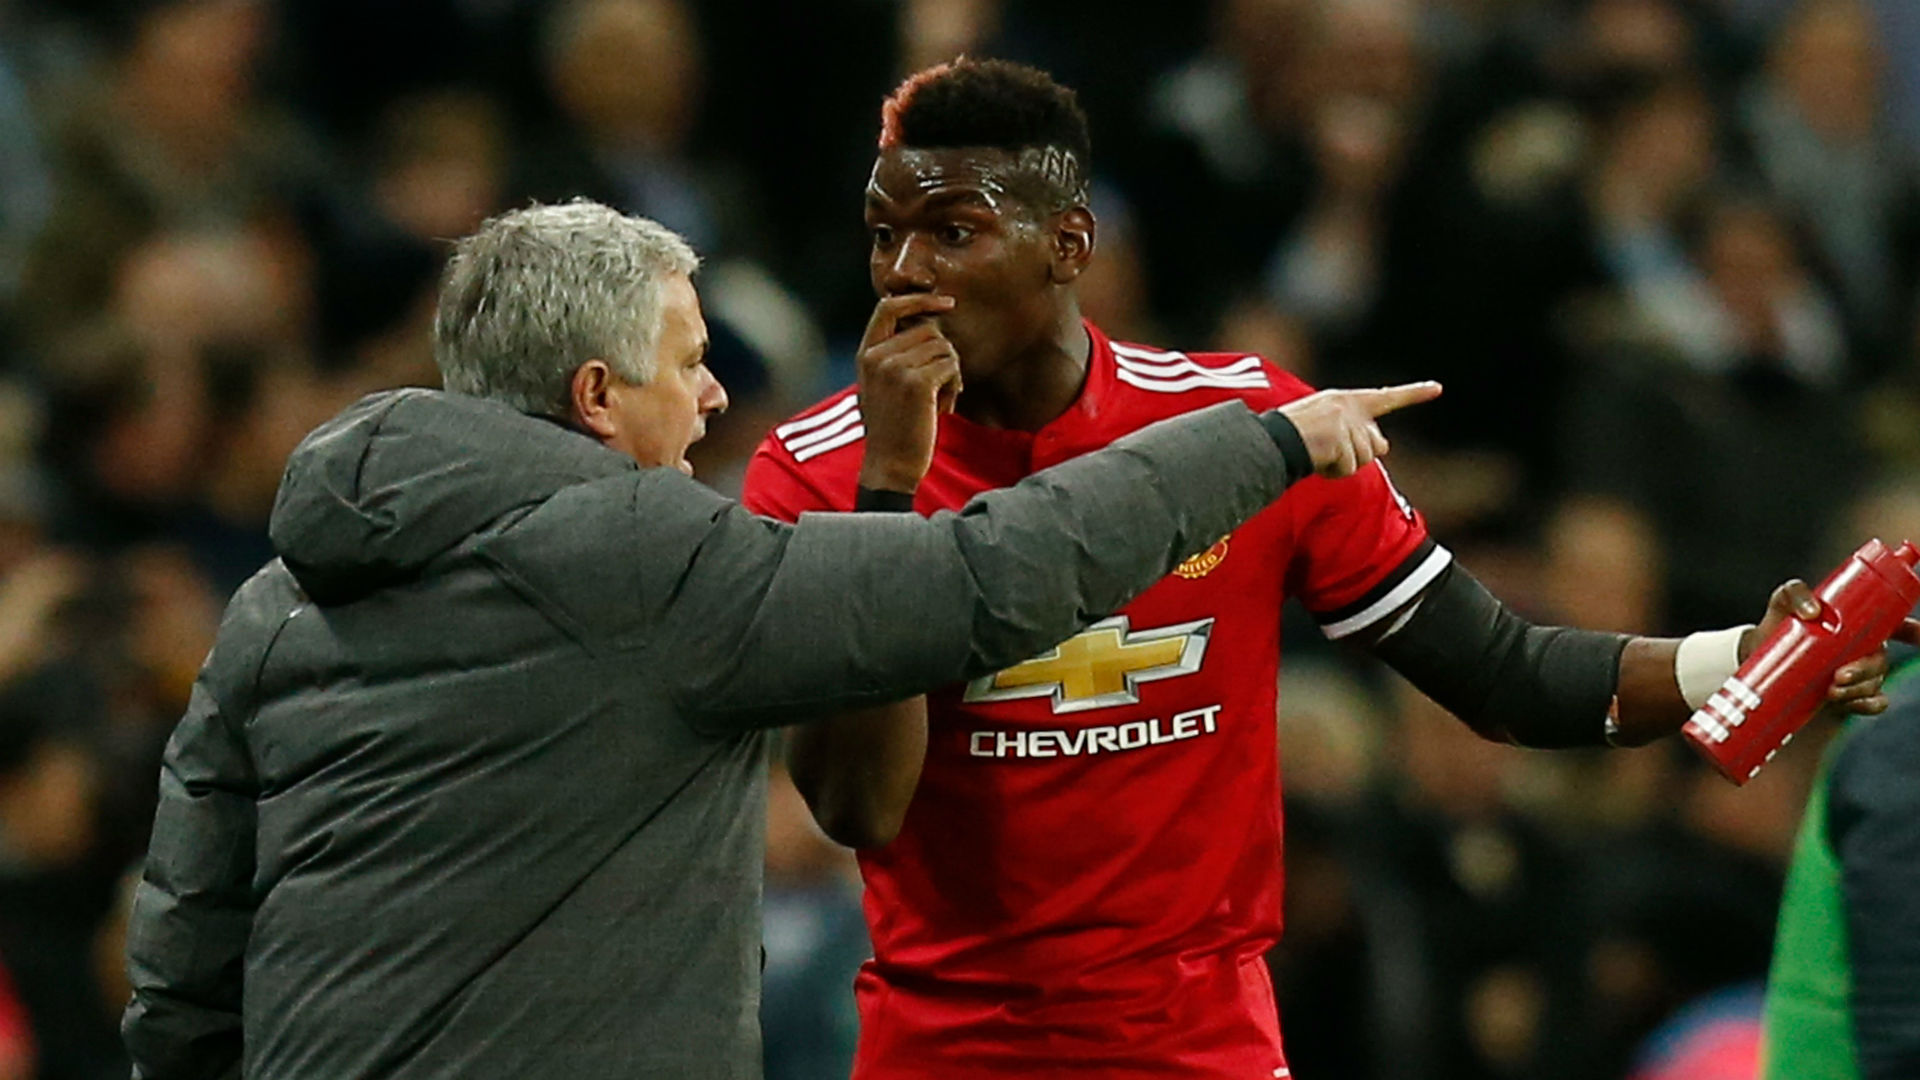 Manchester City v Manchester United: Can Pogba revisit derby-day heroics?